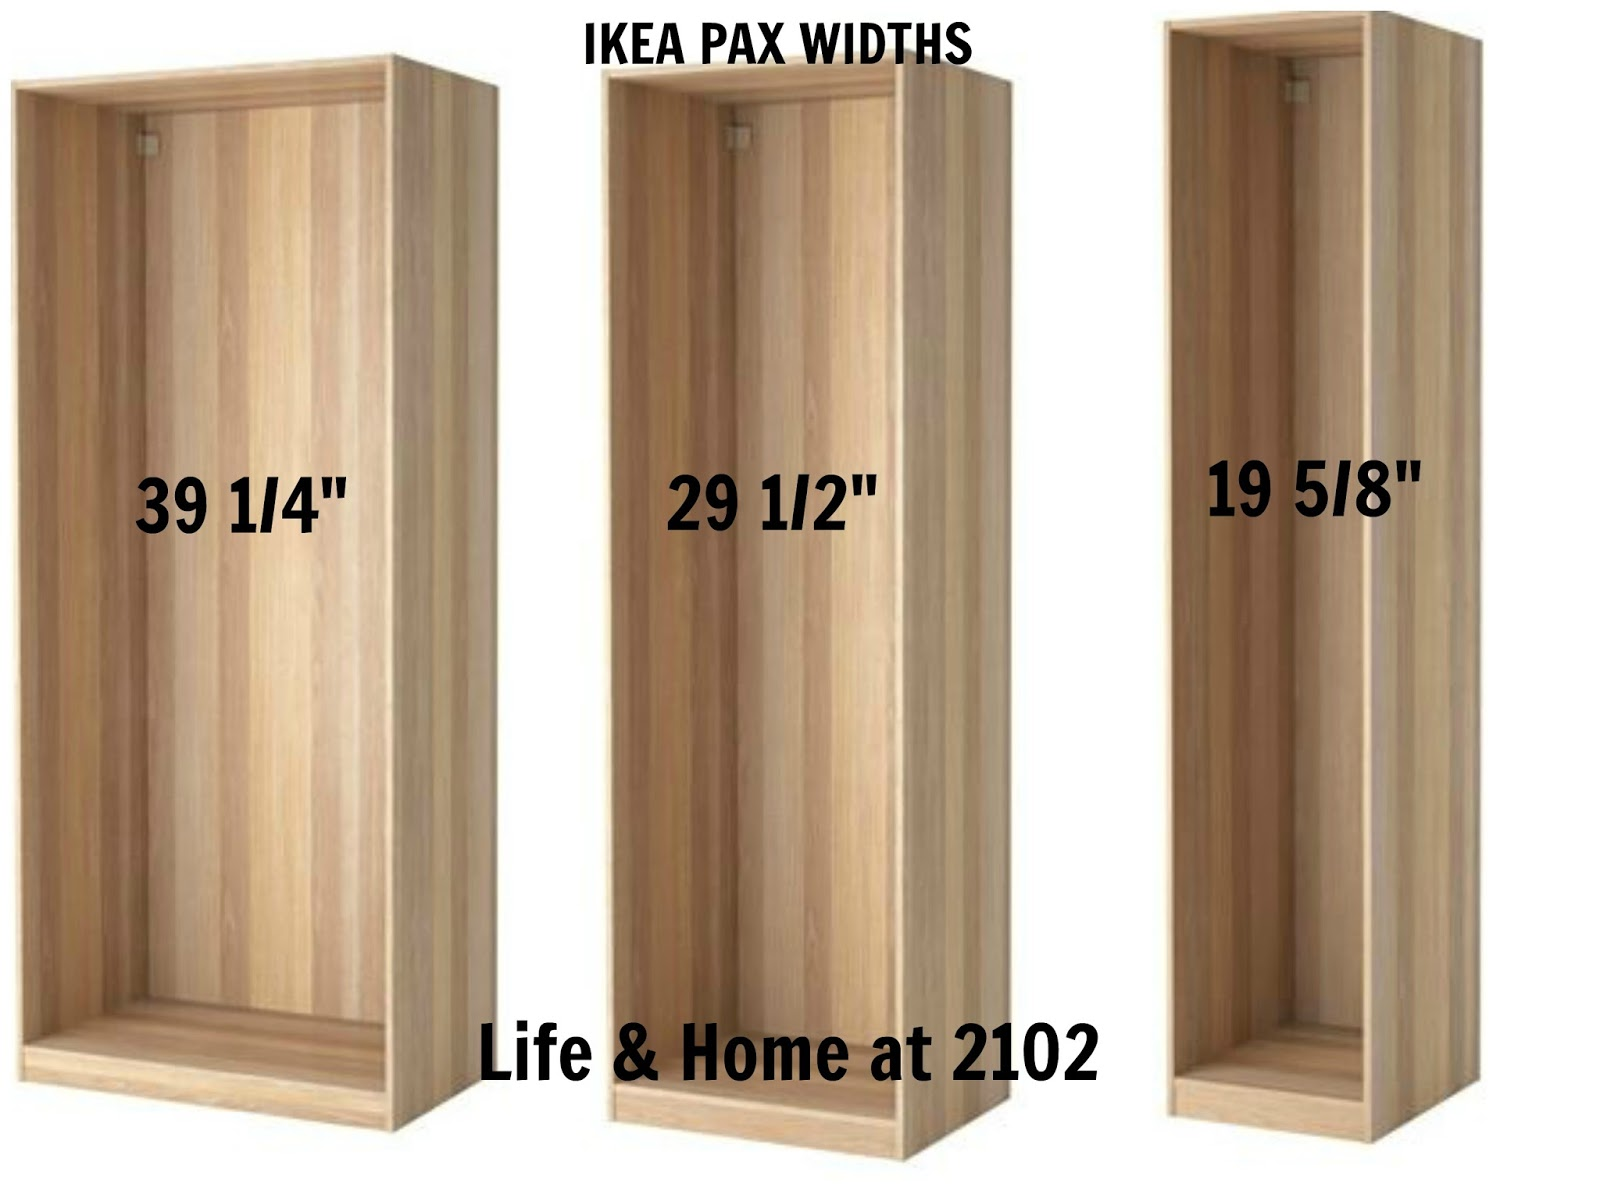 Ikea Wardrobe Sizes Life & Home At 2102: Guide To Building Your Own Closet